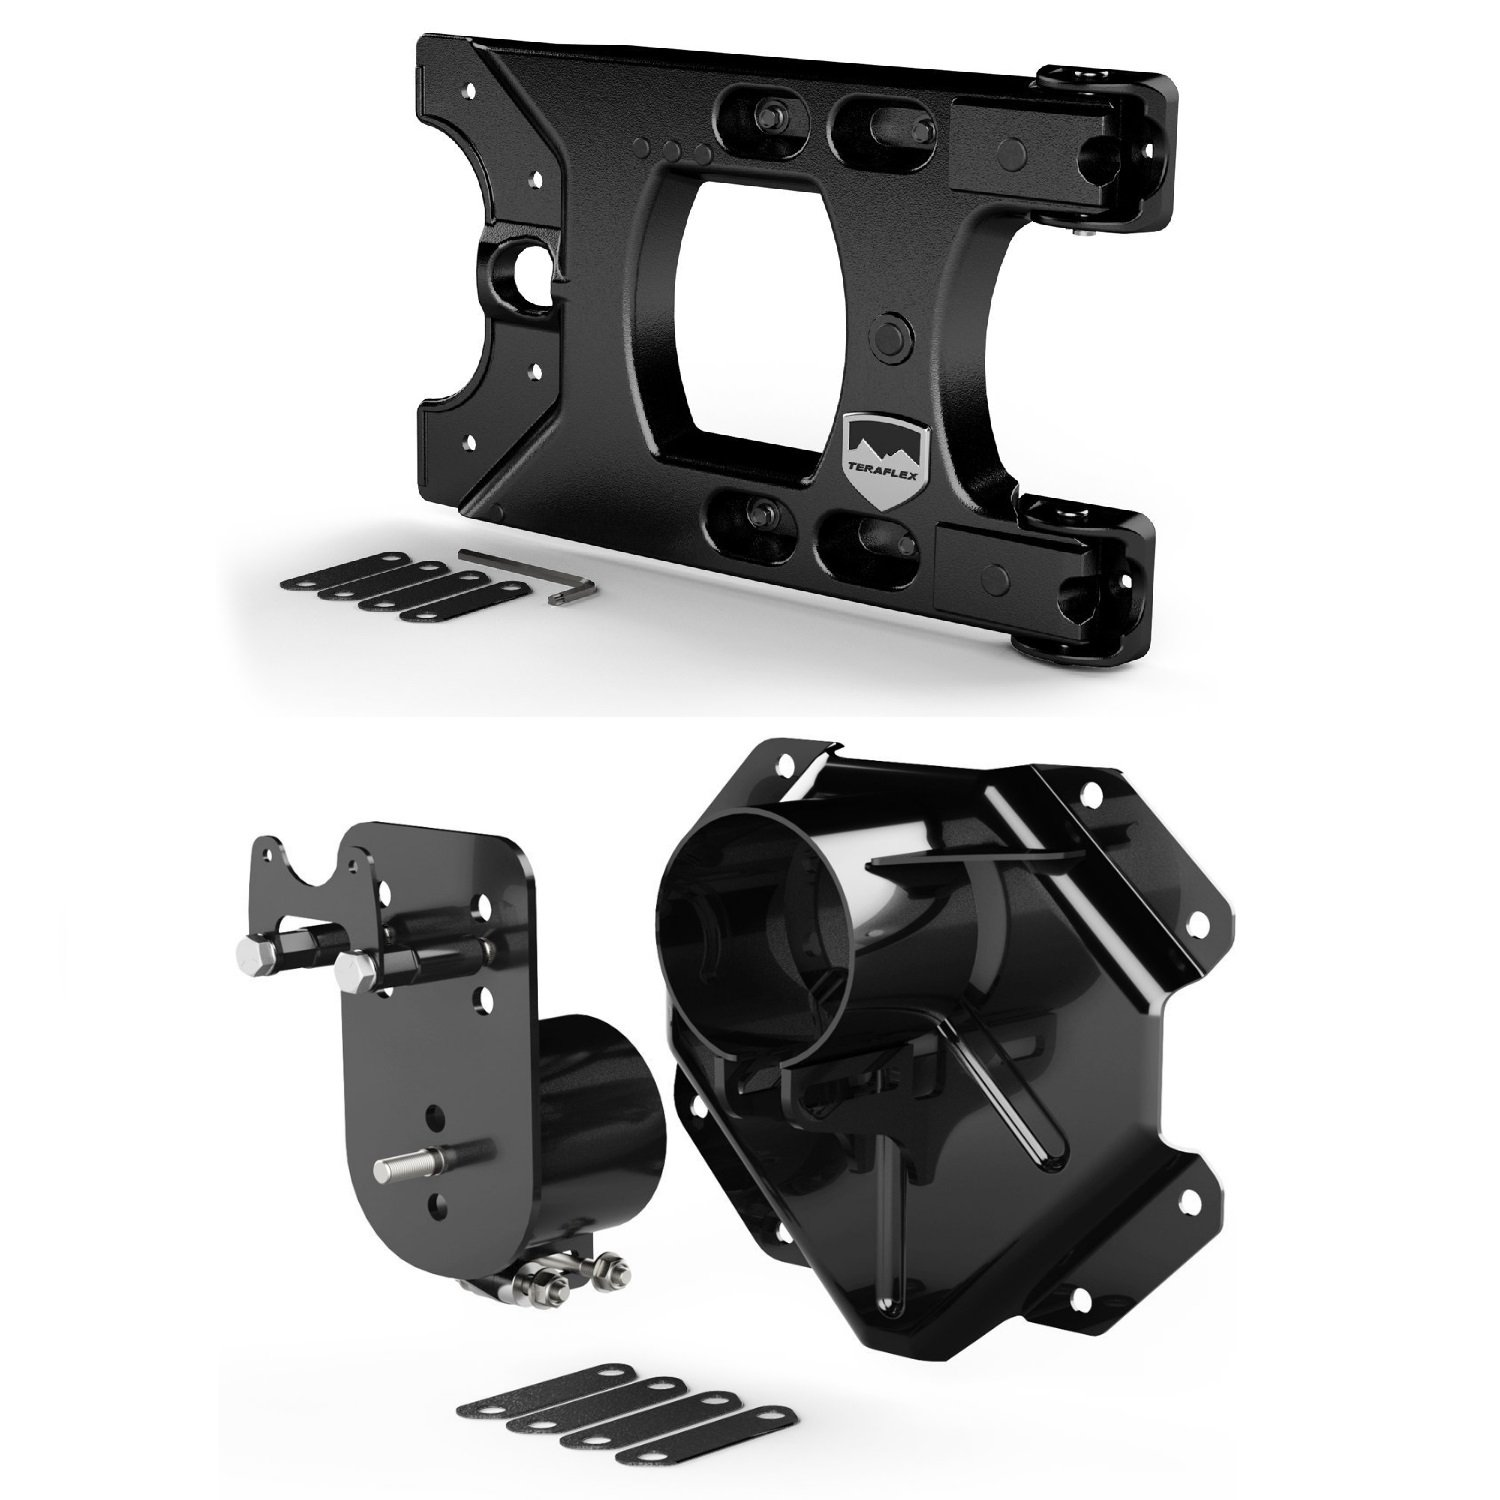 Teraflex 4838150 Alpha HD Hinged Tire Carrier with Adjustable 5x5 Spare Tire Mounting Kit for Jeep Wrangler JK